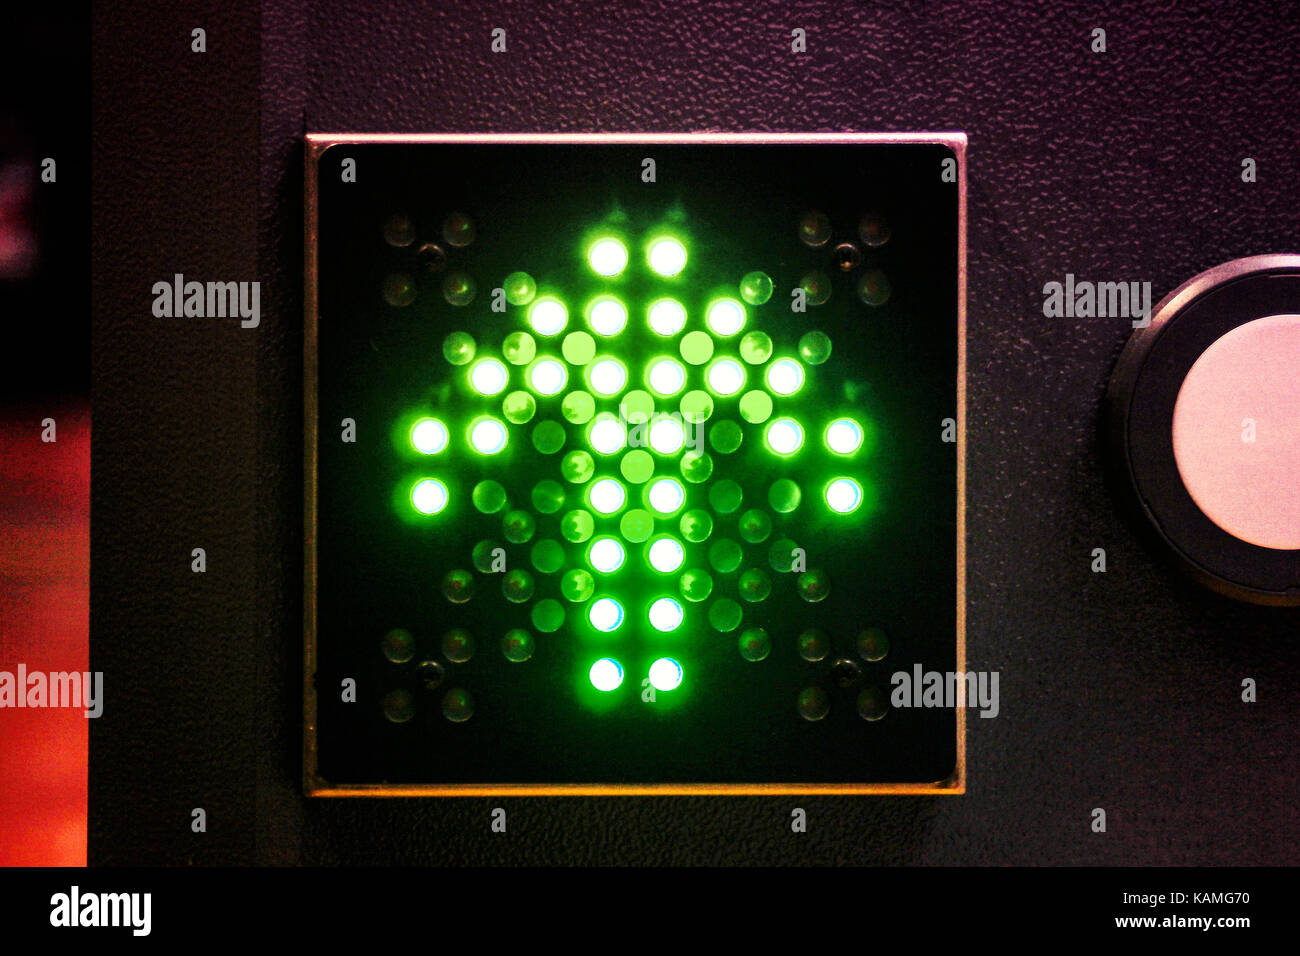 green led illuminated arrow sign - Stock Image